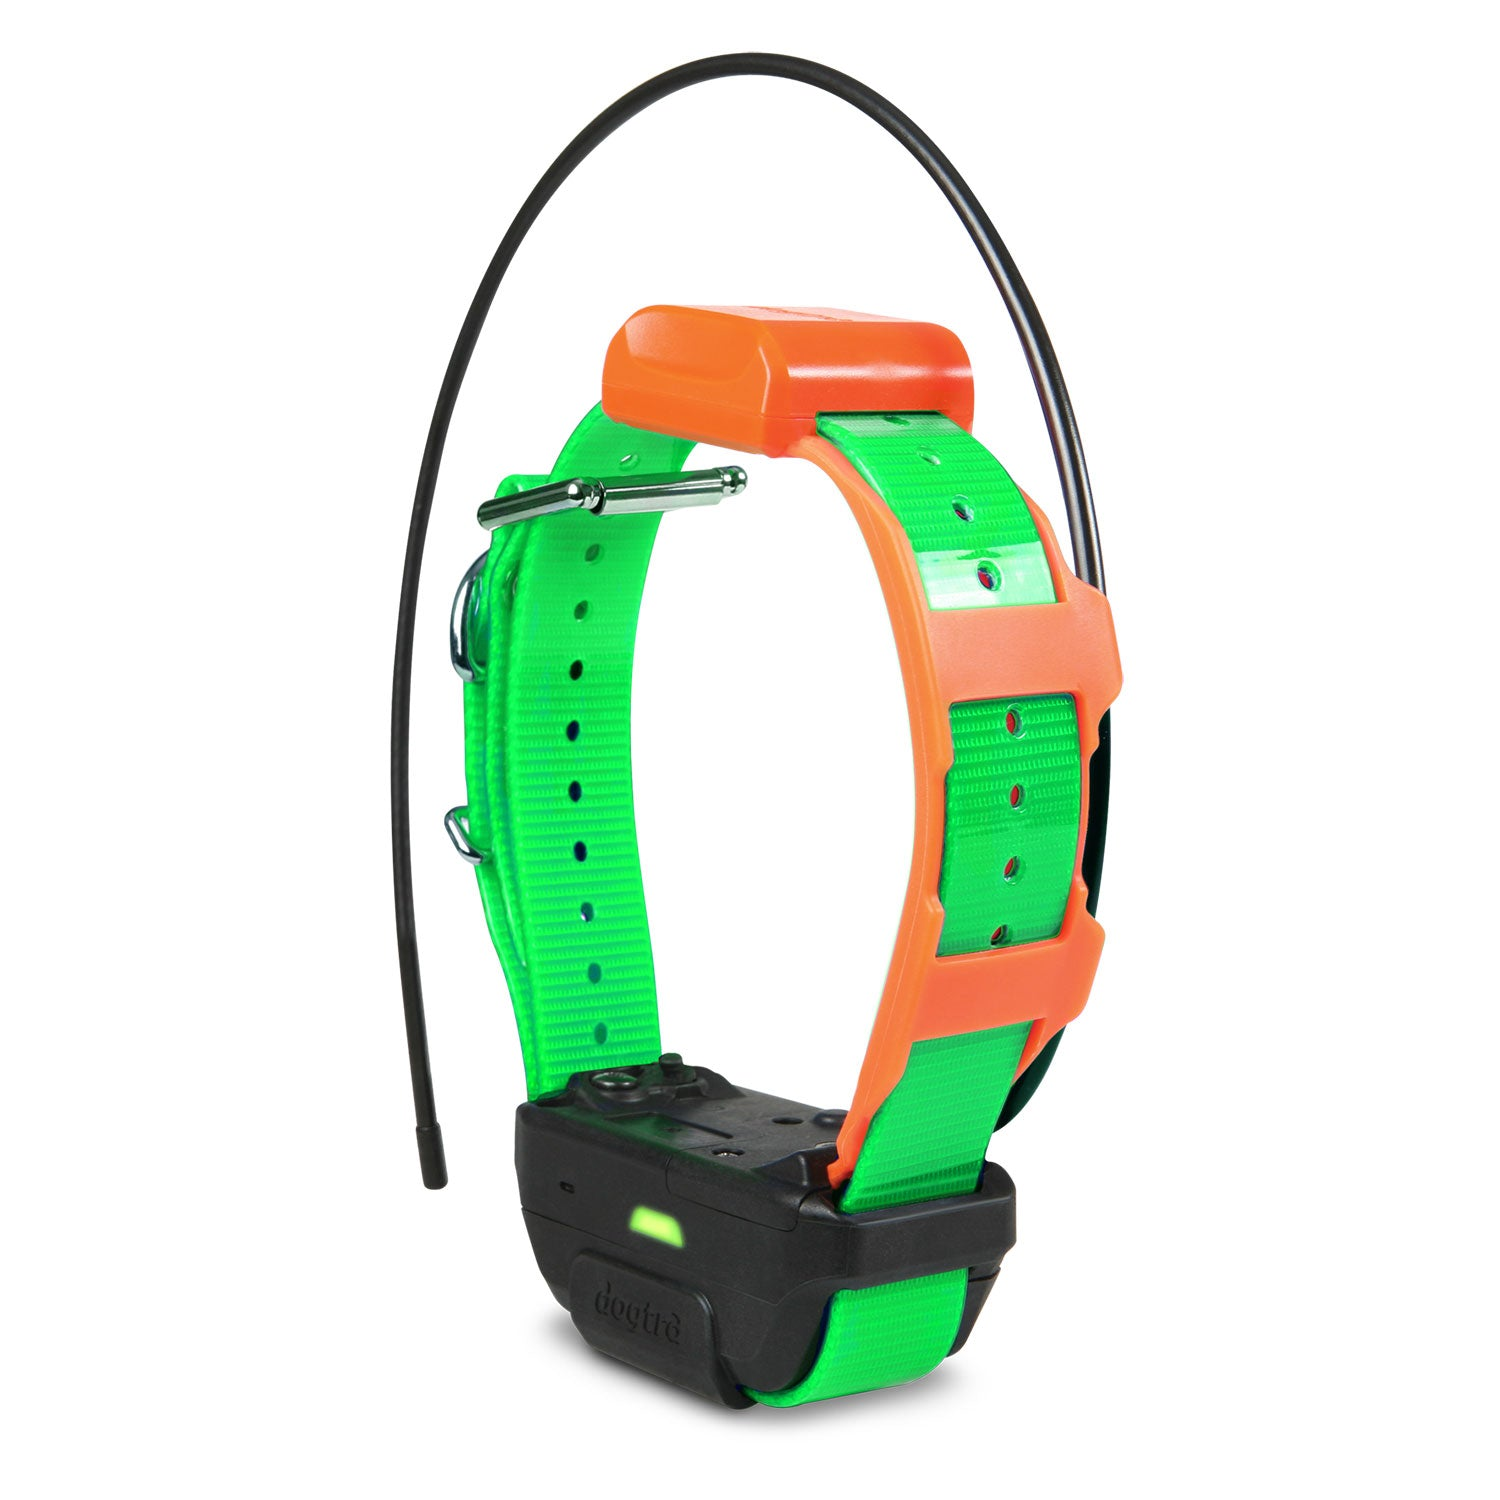 Dogtra Pathfinder TRX Tracking Only Collar Green Dog GPS Tracking - London the Local